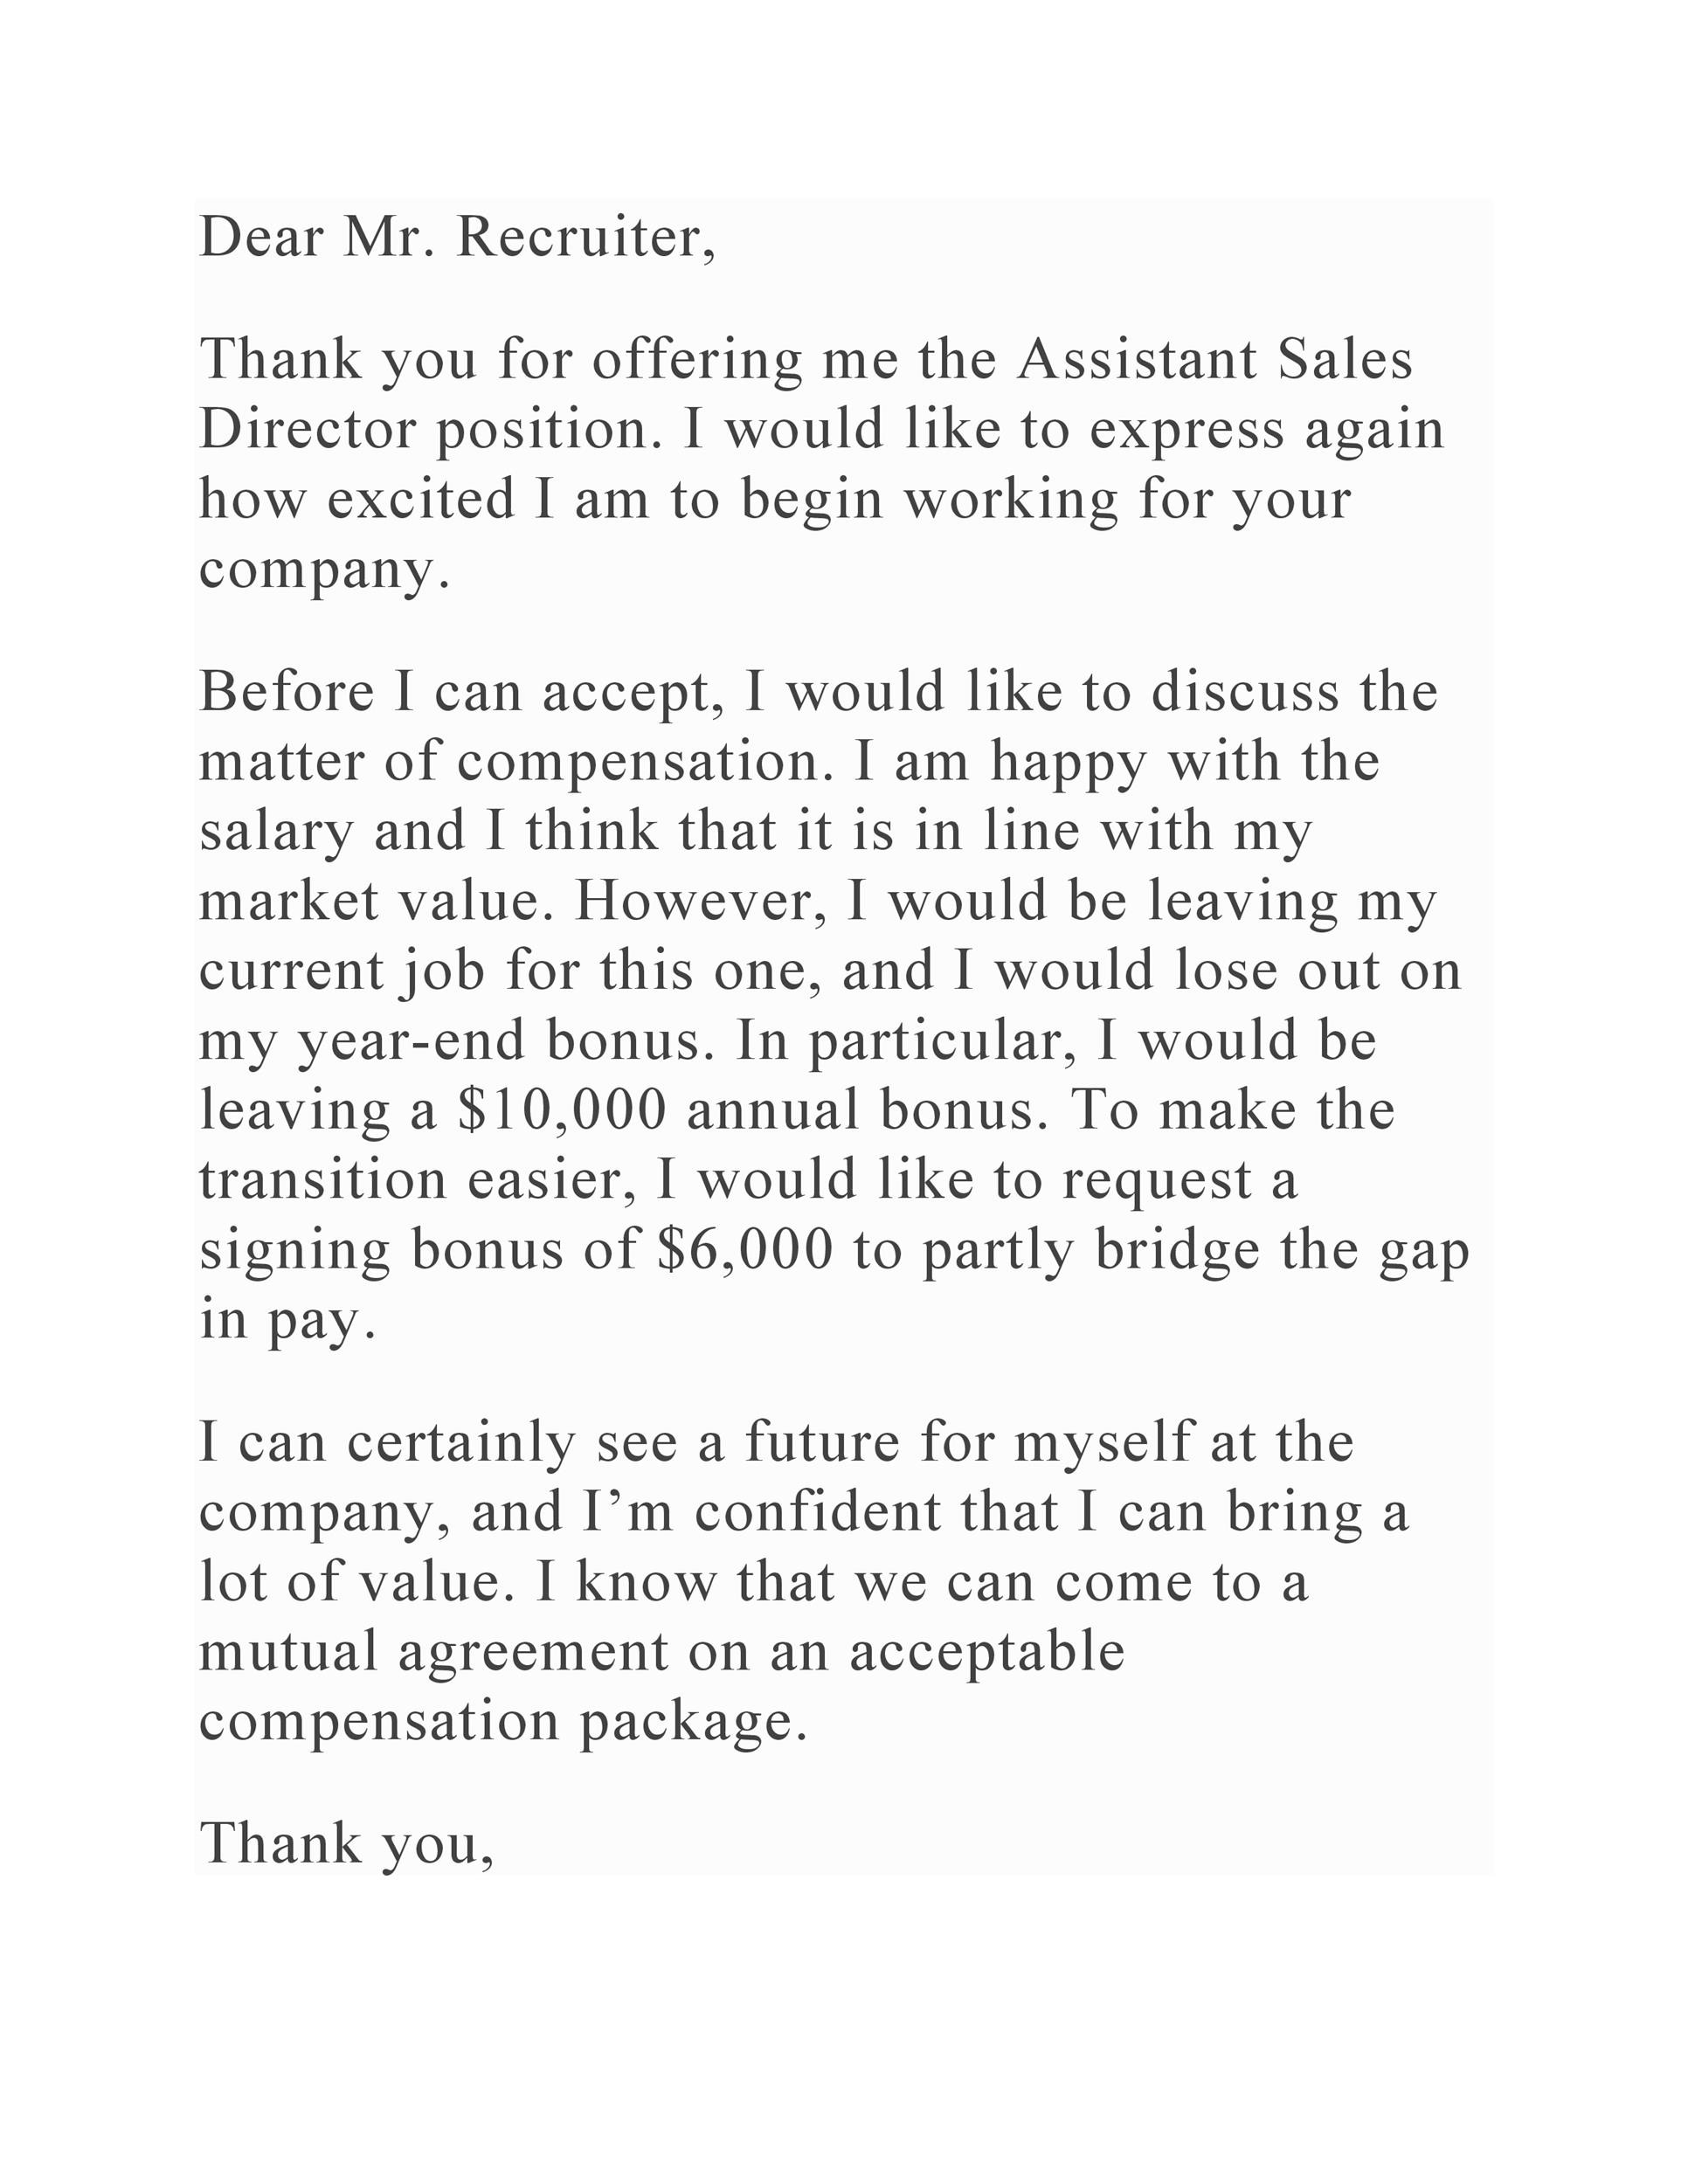 Free salary negotiation letter 13